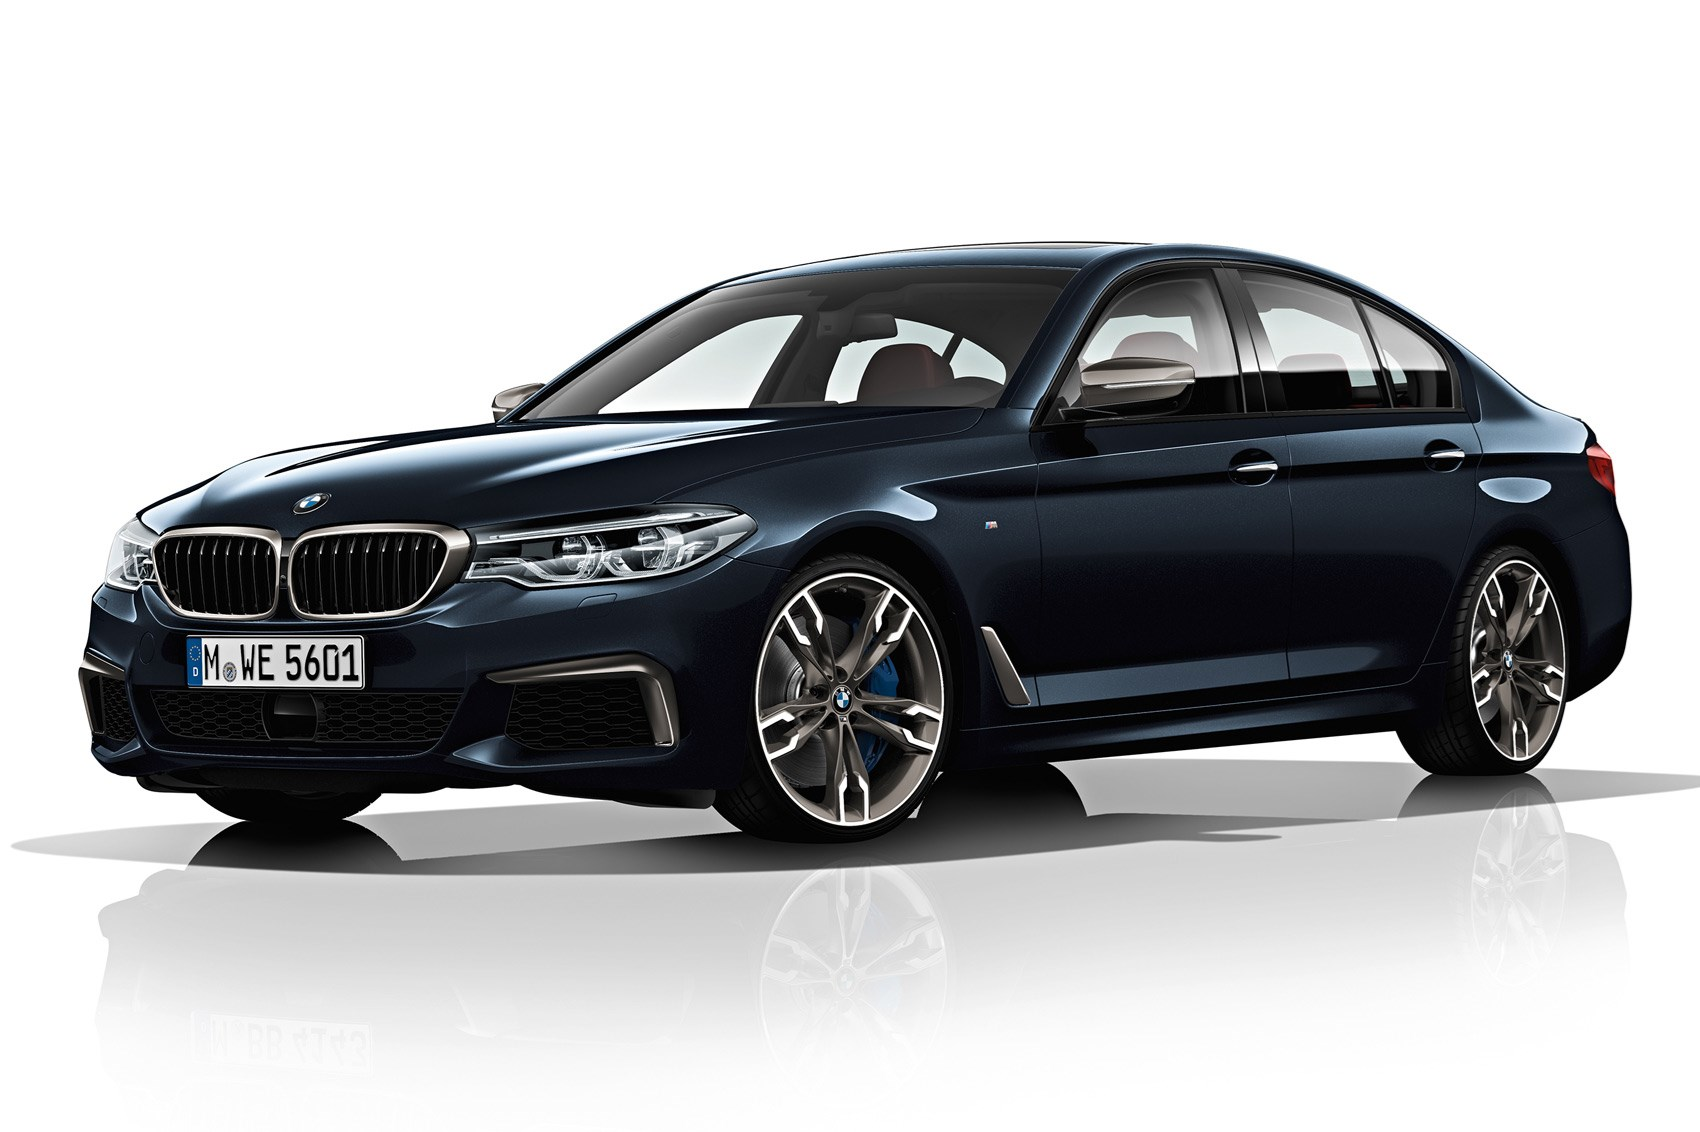 Quad Turbo Bmw M550d Xdrive Is Ultimate Diesel Q Car Car